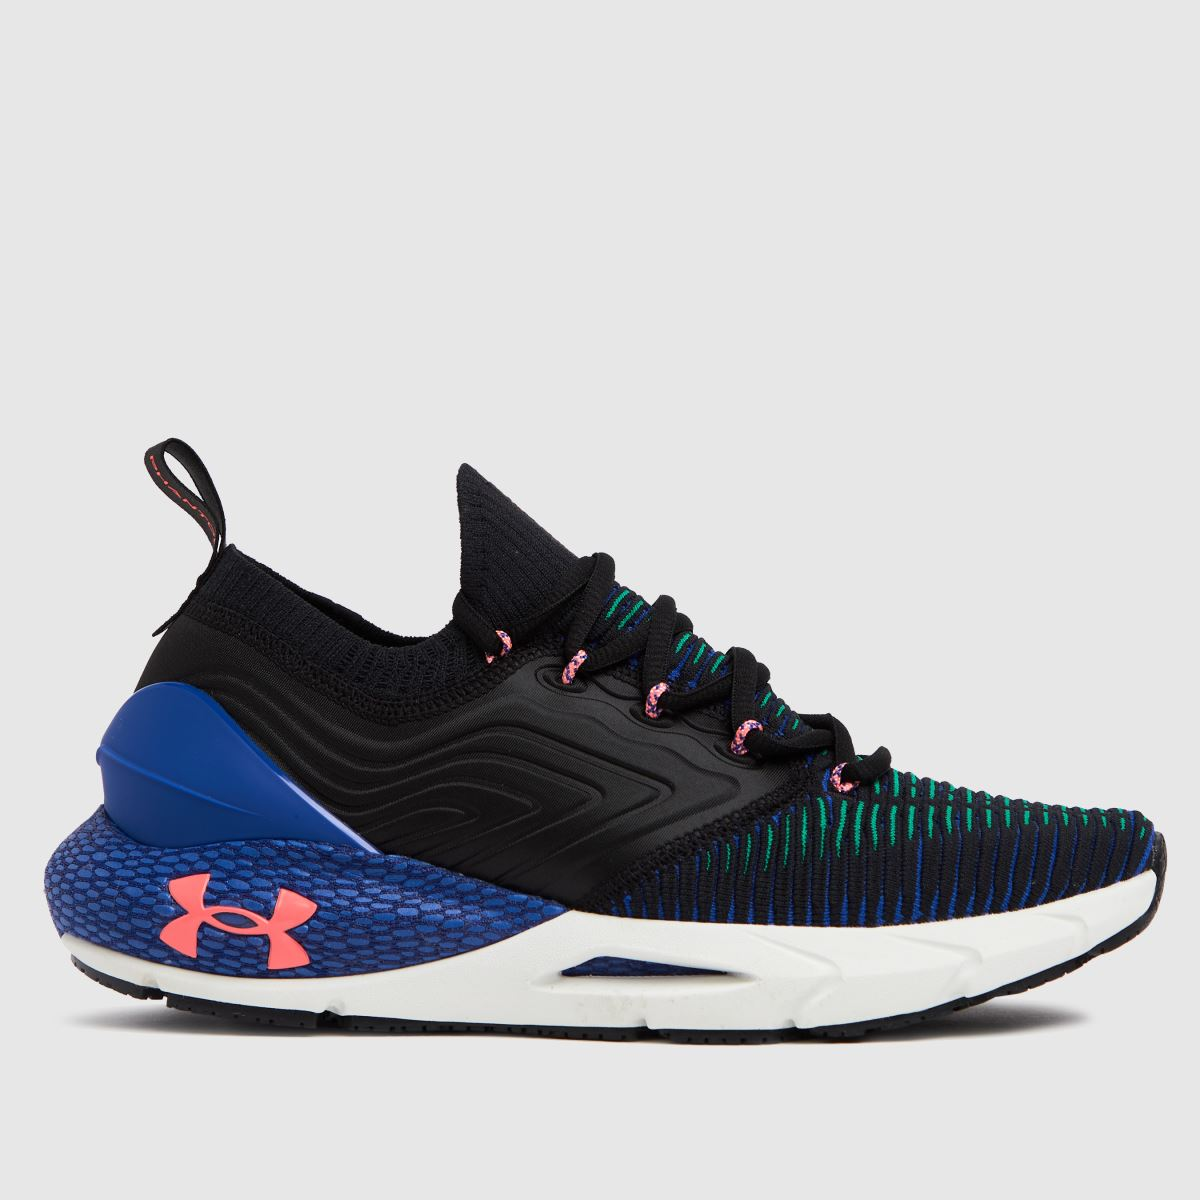 Under Armour Black & Navy Hovr Phantom 2 Inknt Trainers